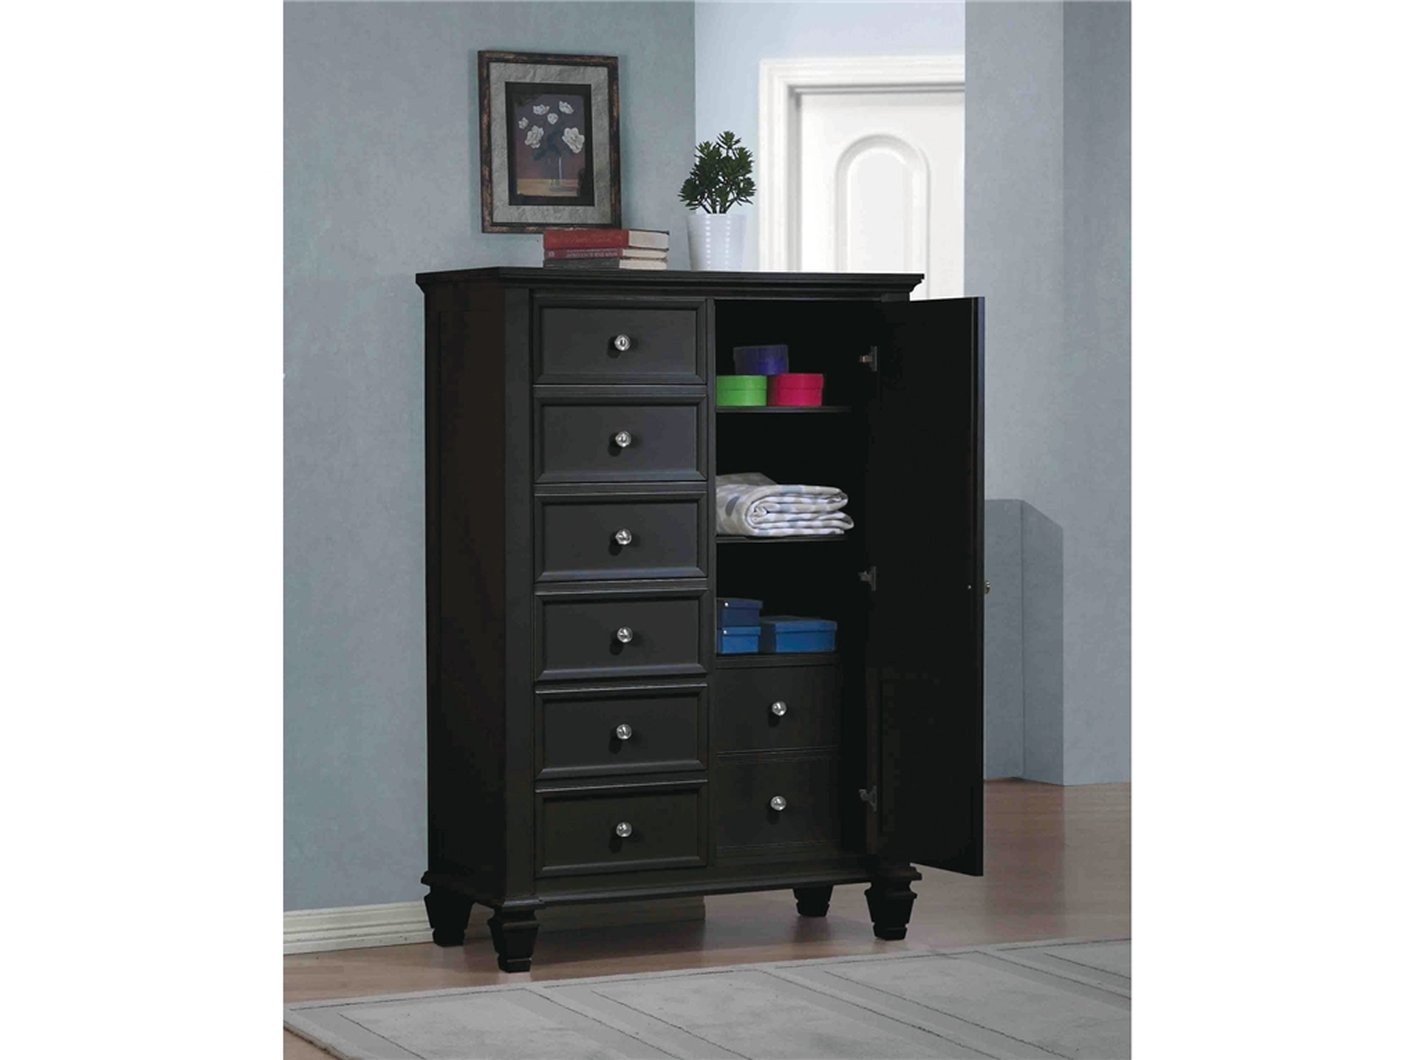 Black Wood Chest of Drawers - Steal-A-Sofa Furniture Outlet Los Angeles CA